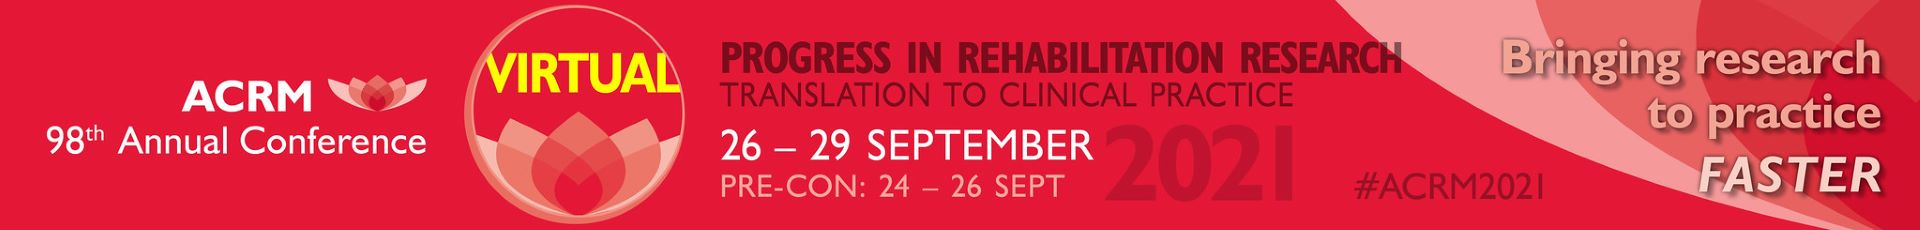 ACRM 98th ANNUAL CONFERENCE Event Banner